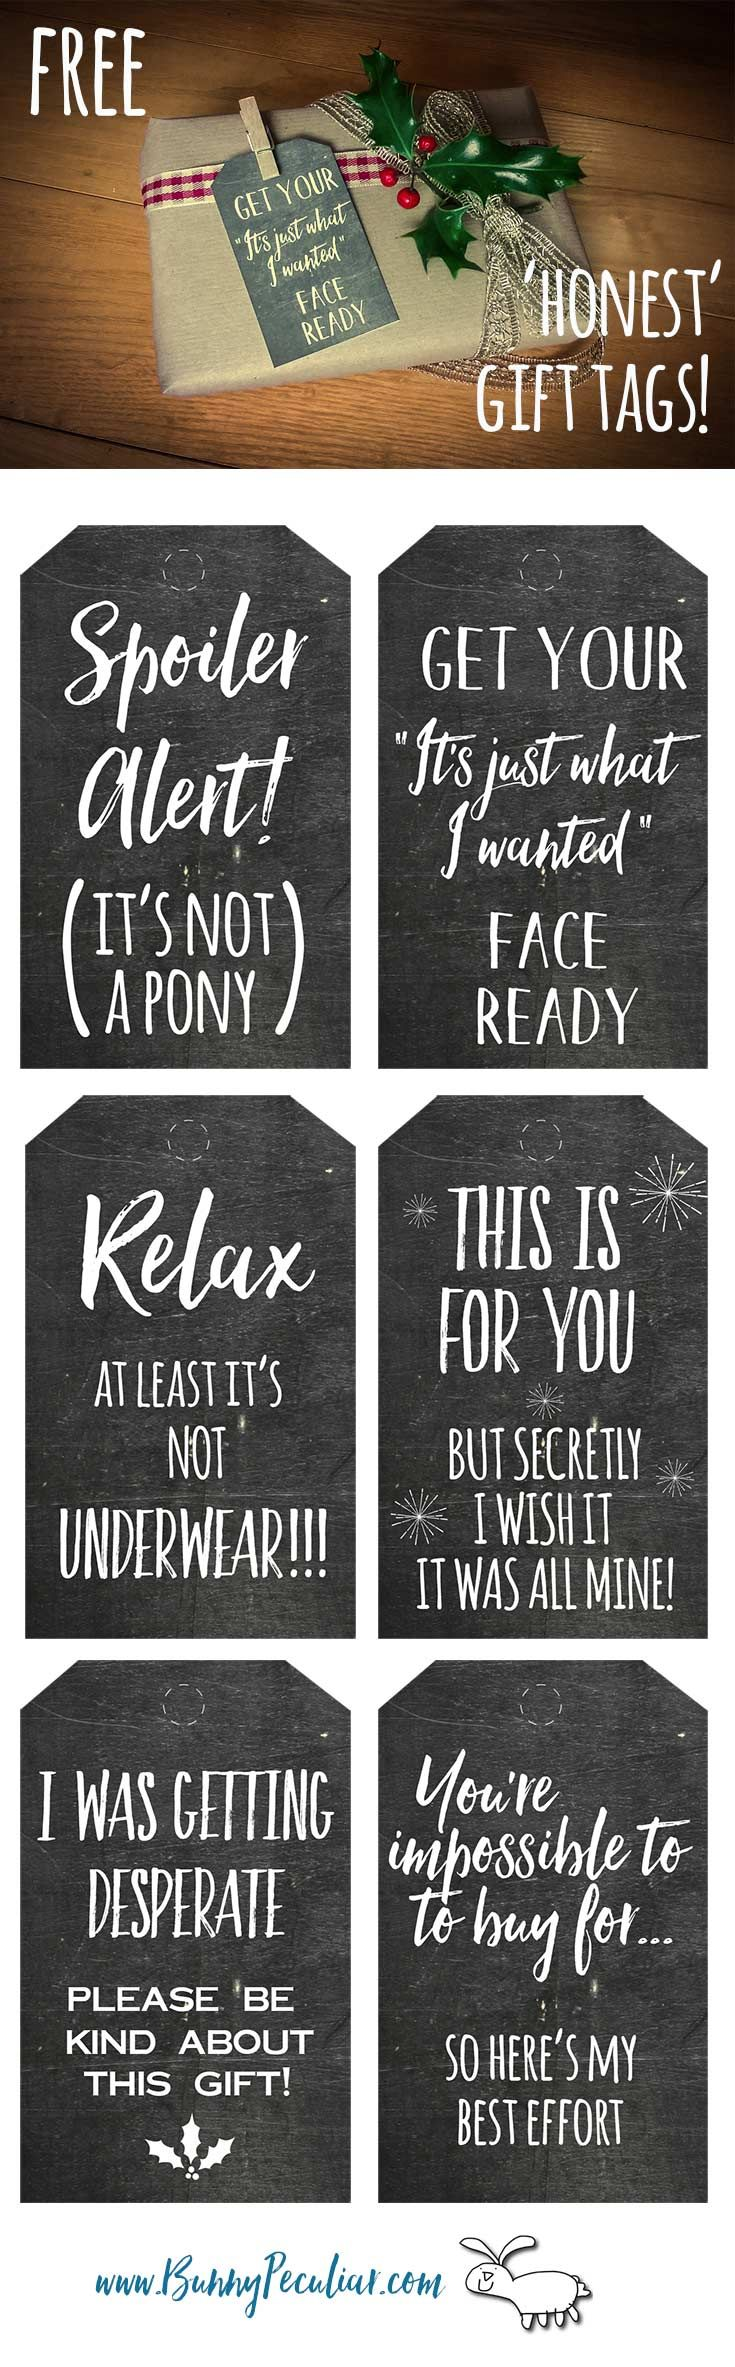 hearts glasses Honest Christmas chalkboard gift tags are what you really need this holiday